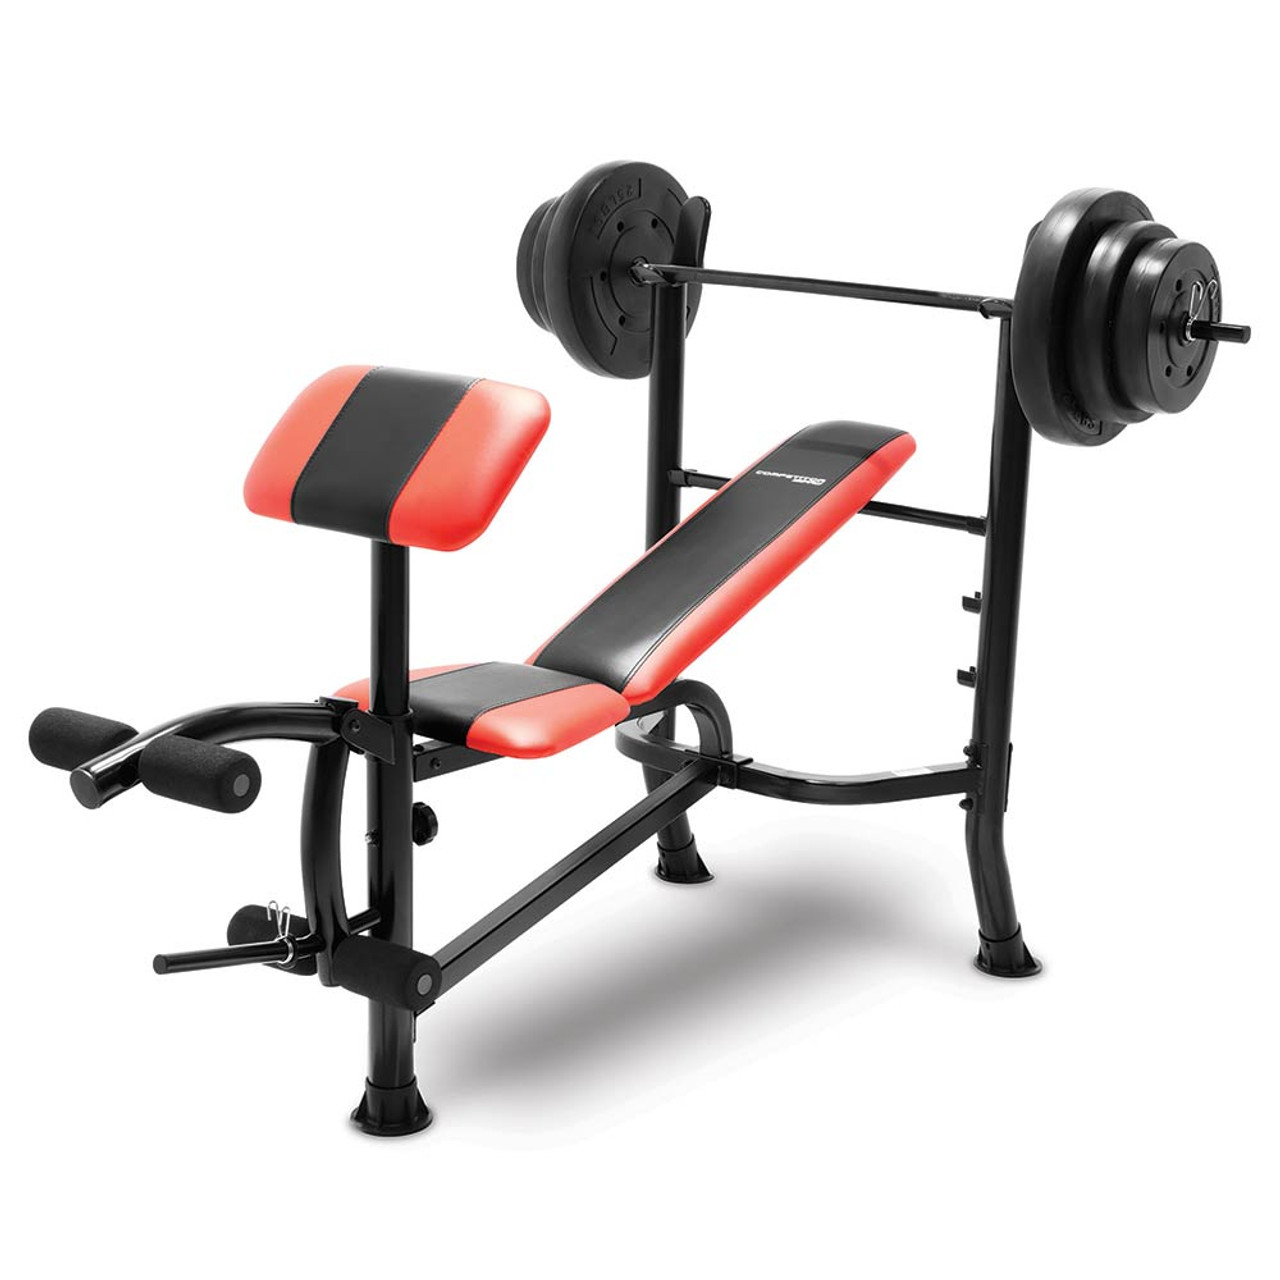 Competitor bench 100 lb weight set cb 2982 quality strength Bench weights